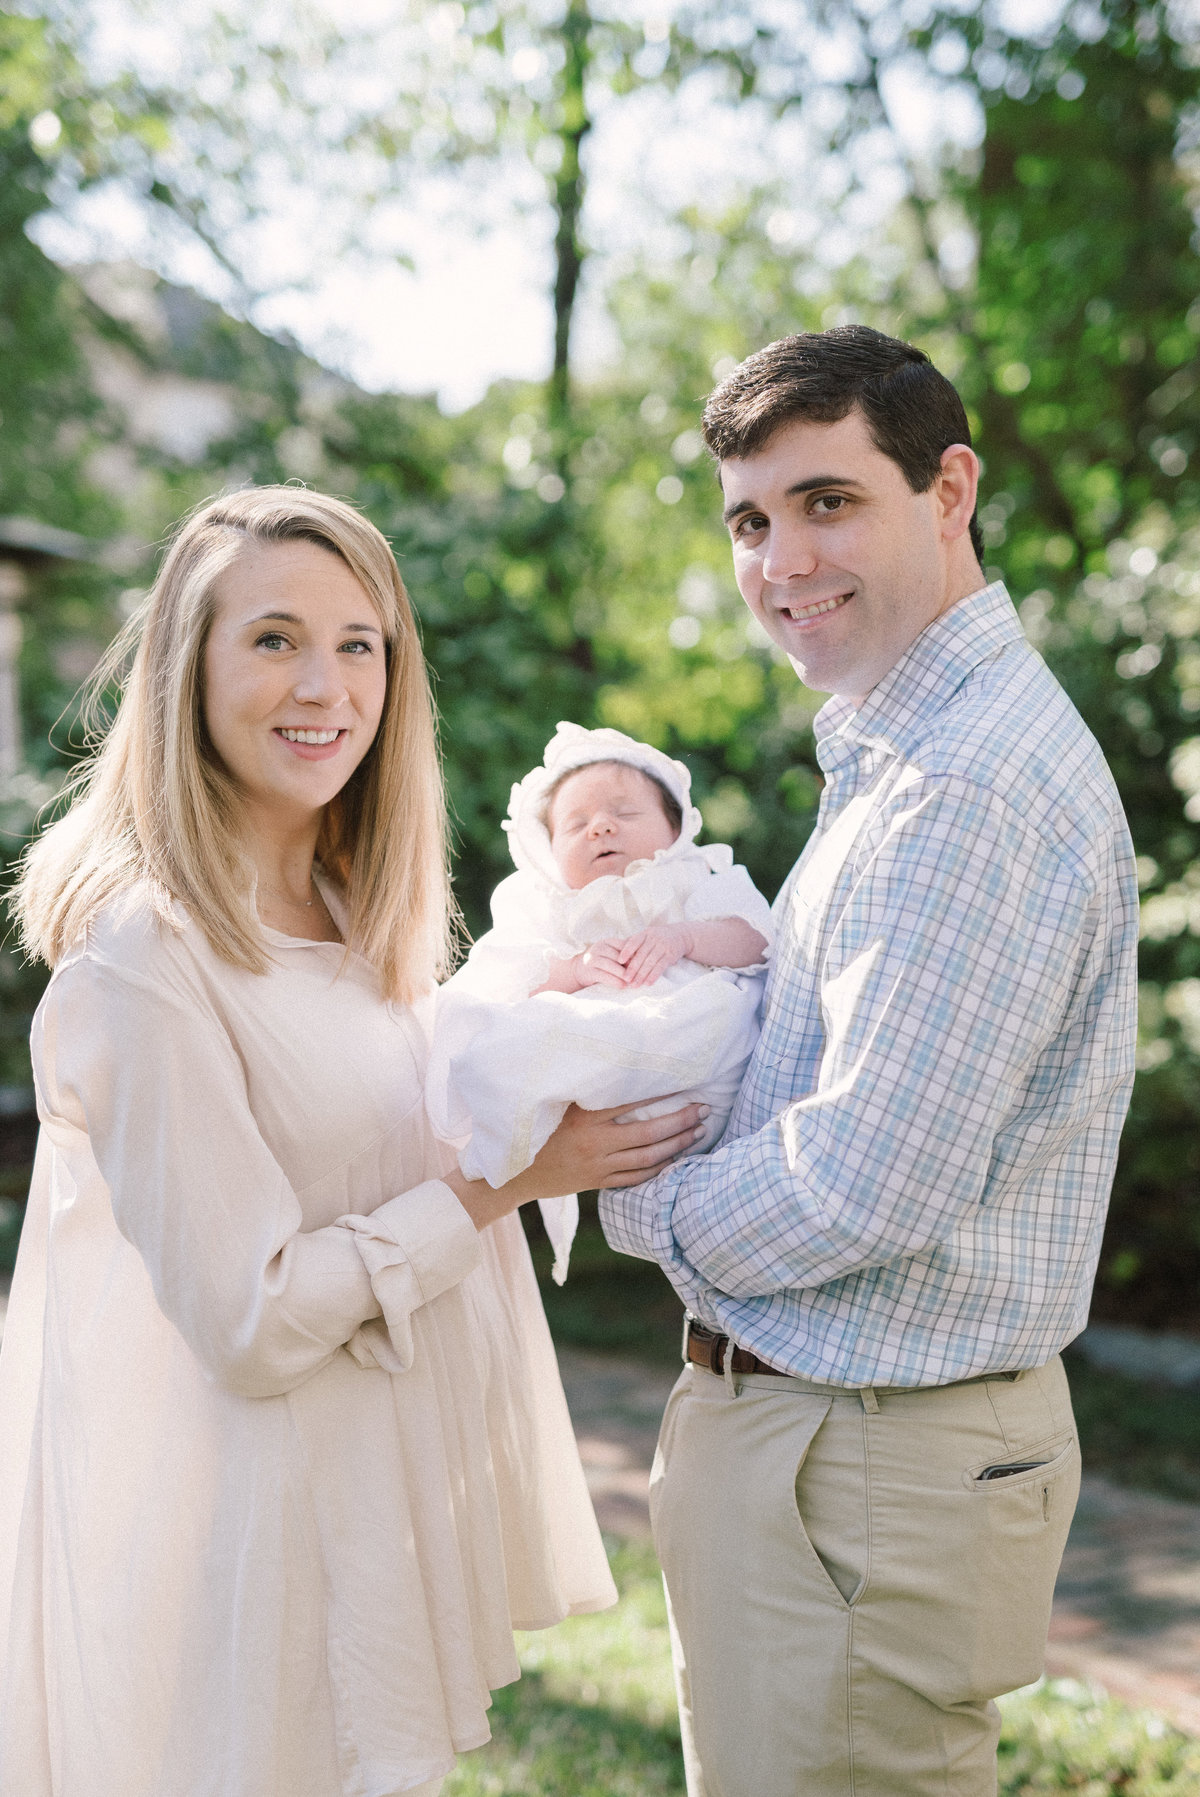 Beautiful Mountain Brook family newborn session photos in Alabama